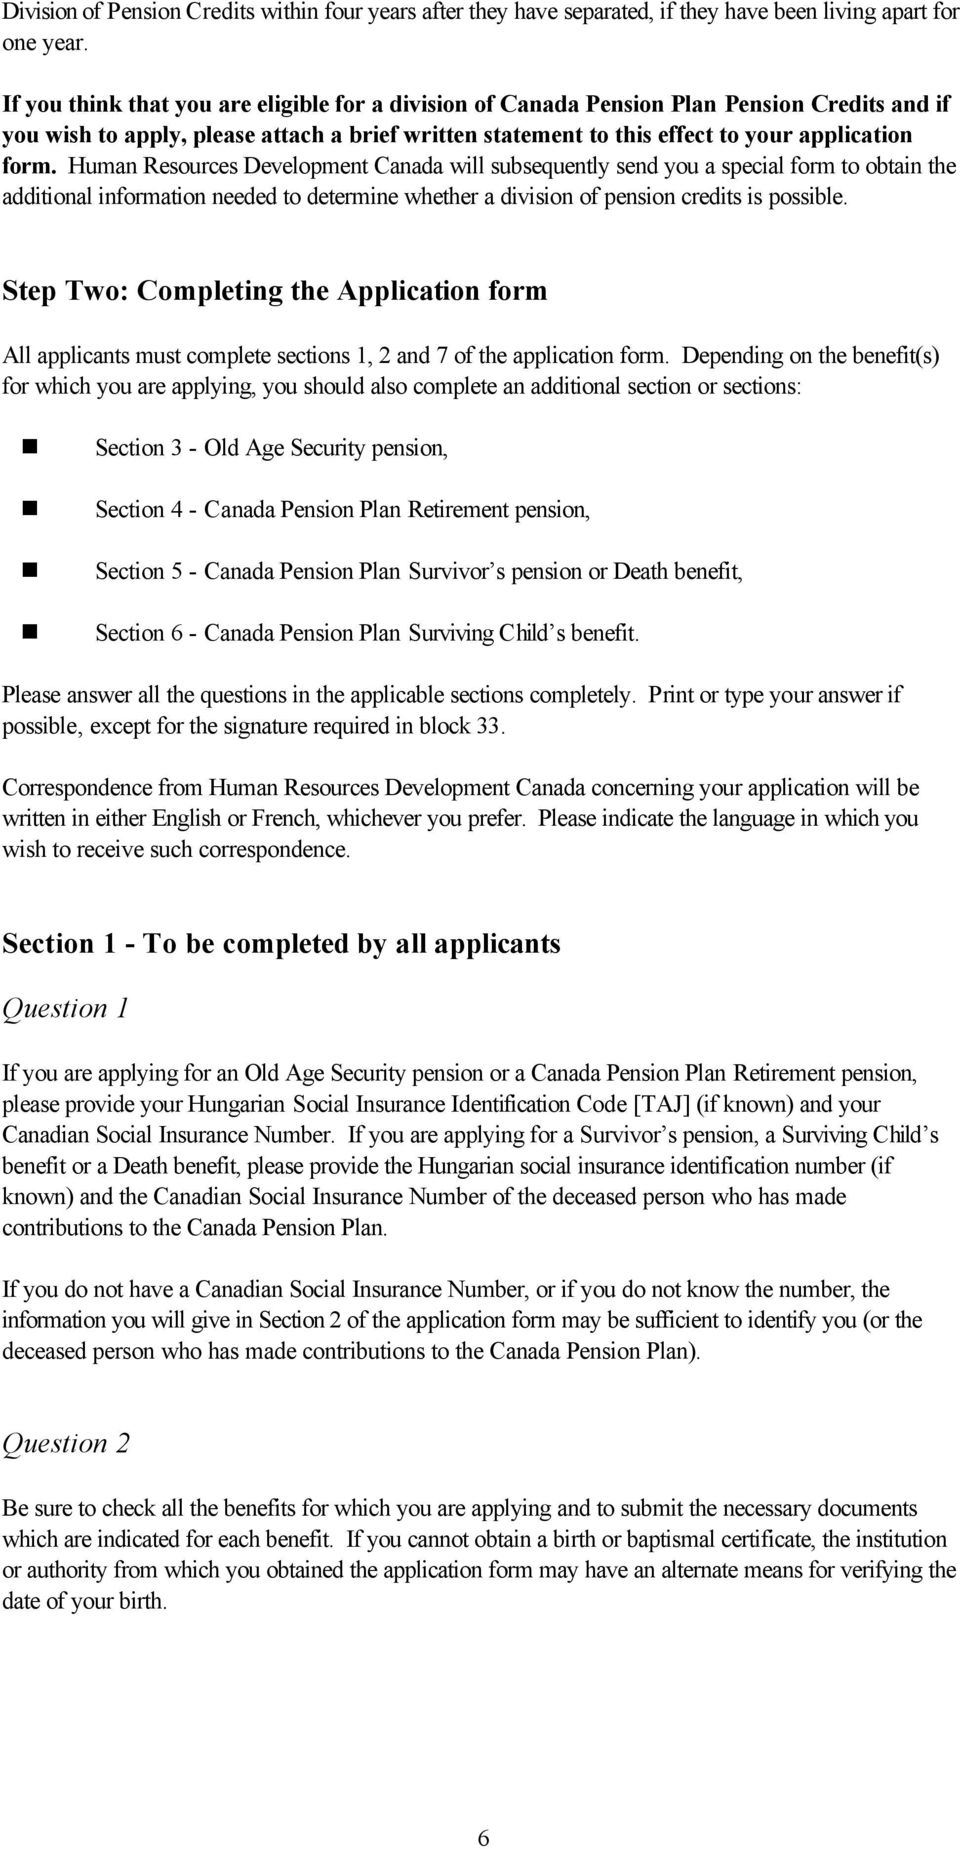 Human Resources Development Canada will subsequently send you a special form to obtain the additional information needed to determine whether a division of pension credits is possible.